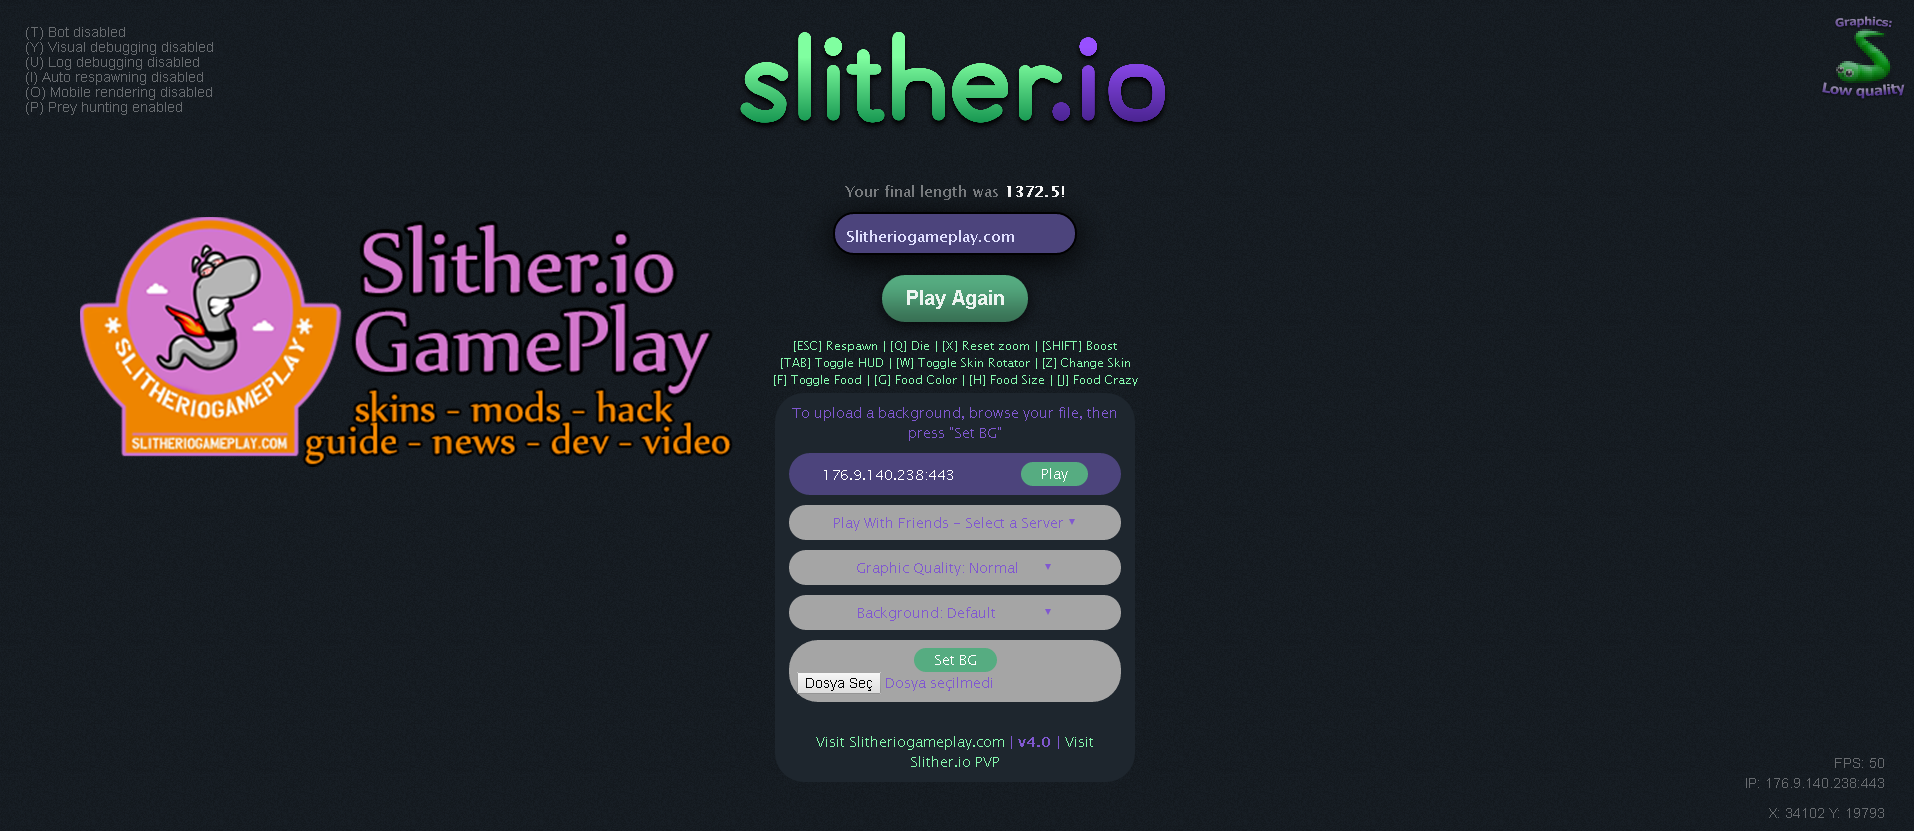 Slither io Mod & Bot Pack Download - Slither io Mods & Skin